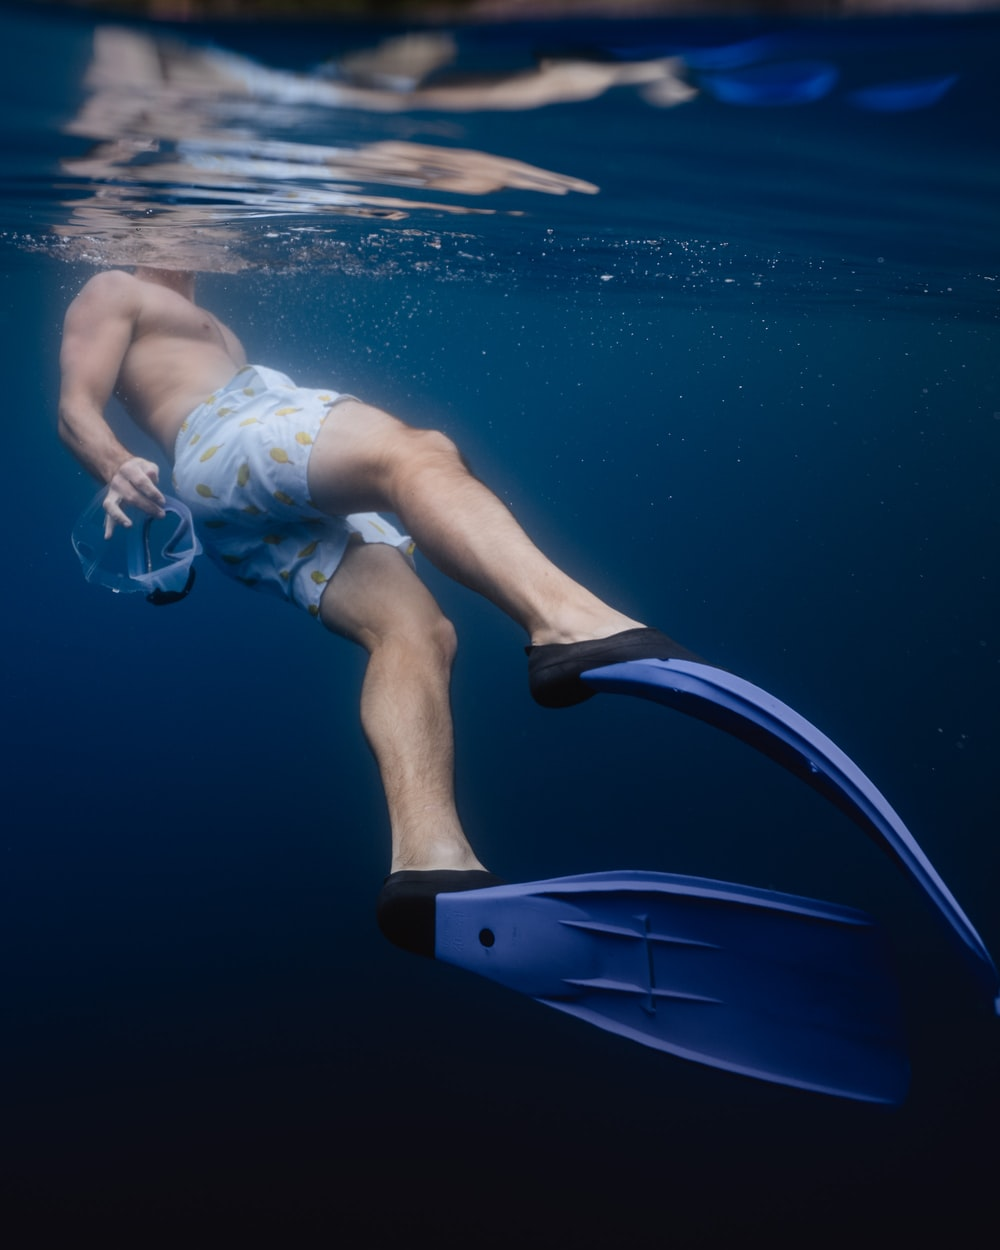 under water photography of man wearing blue flippers